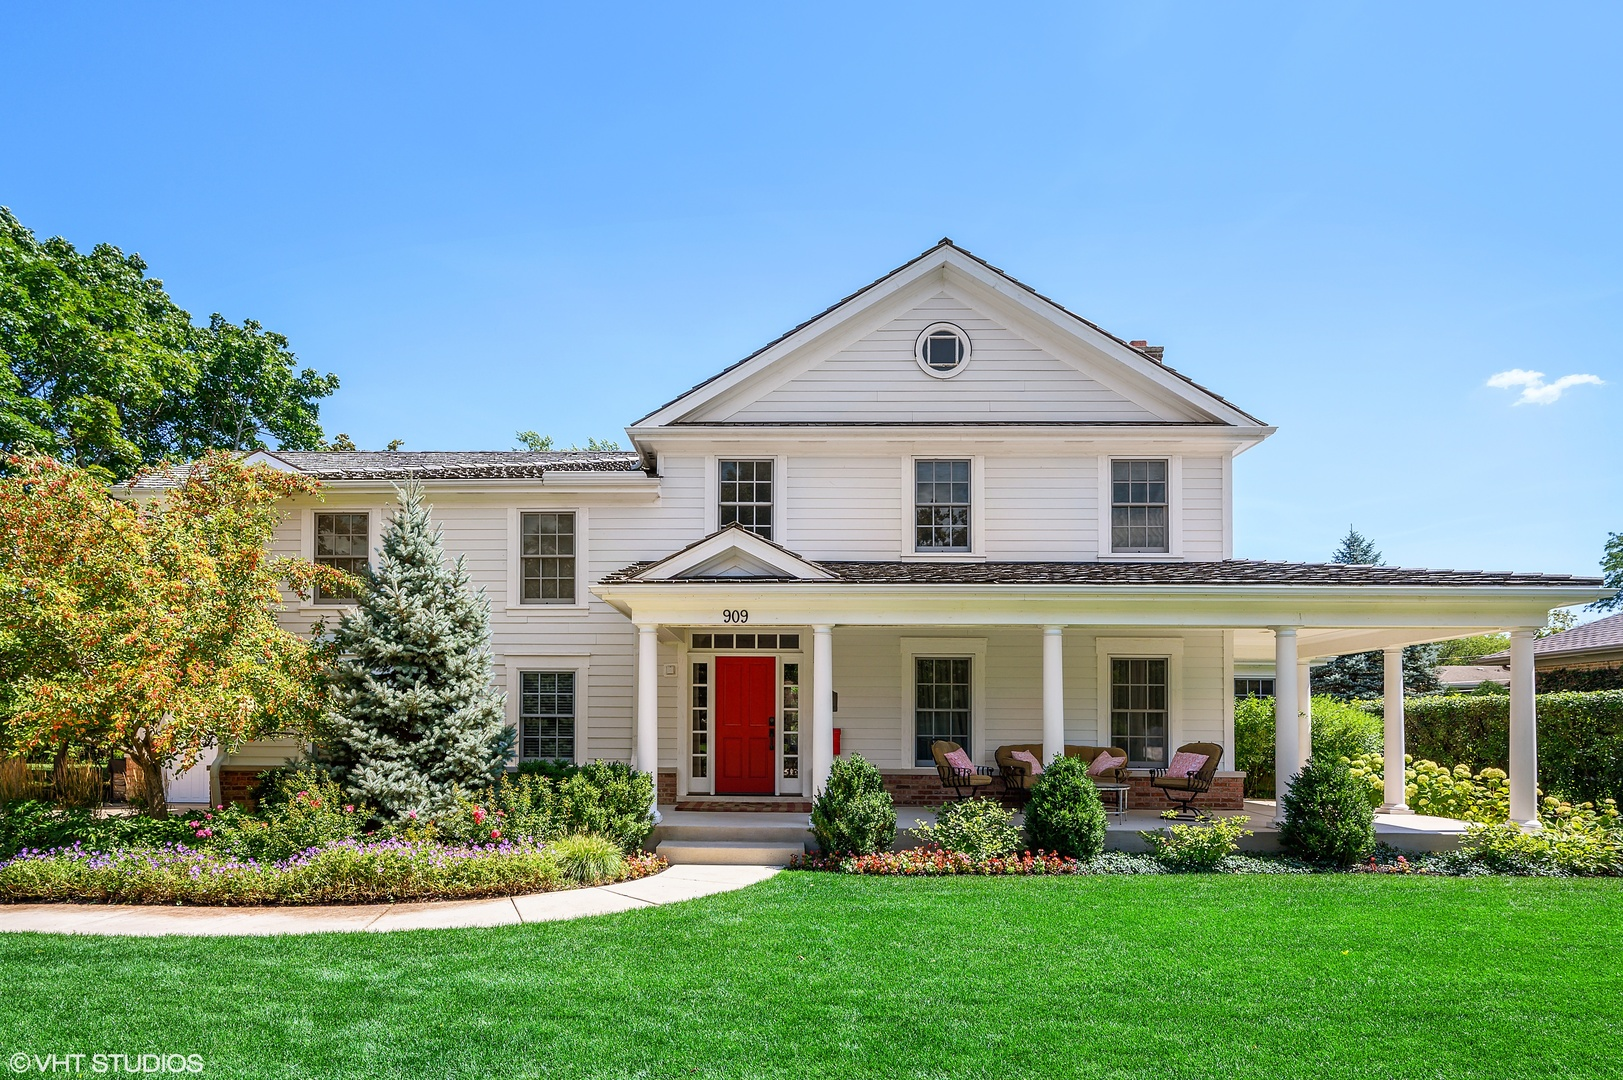 909 Windsor Road, Glenview, Illinois